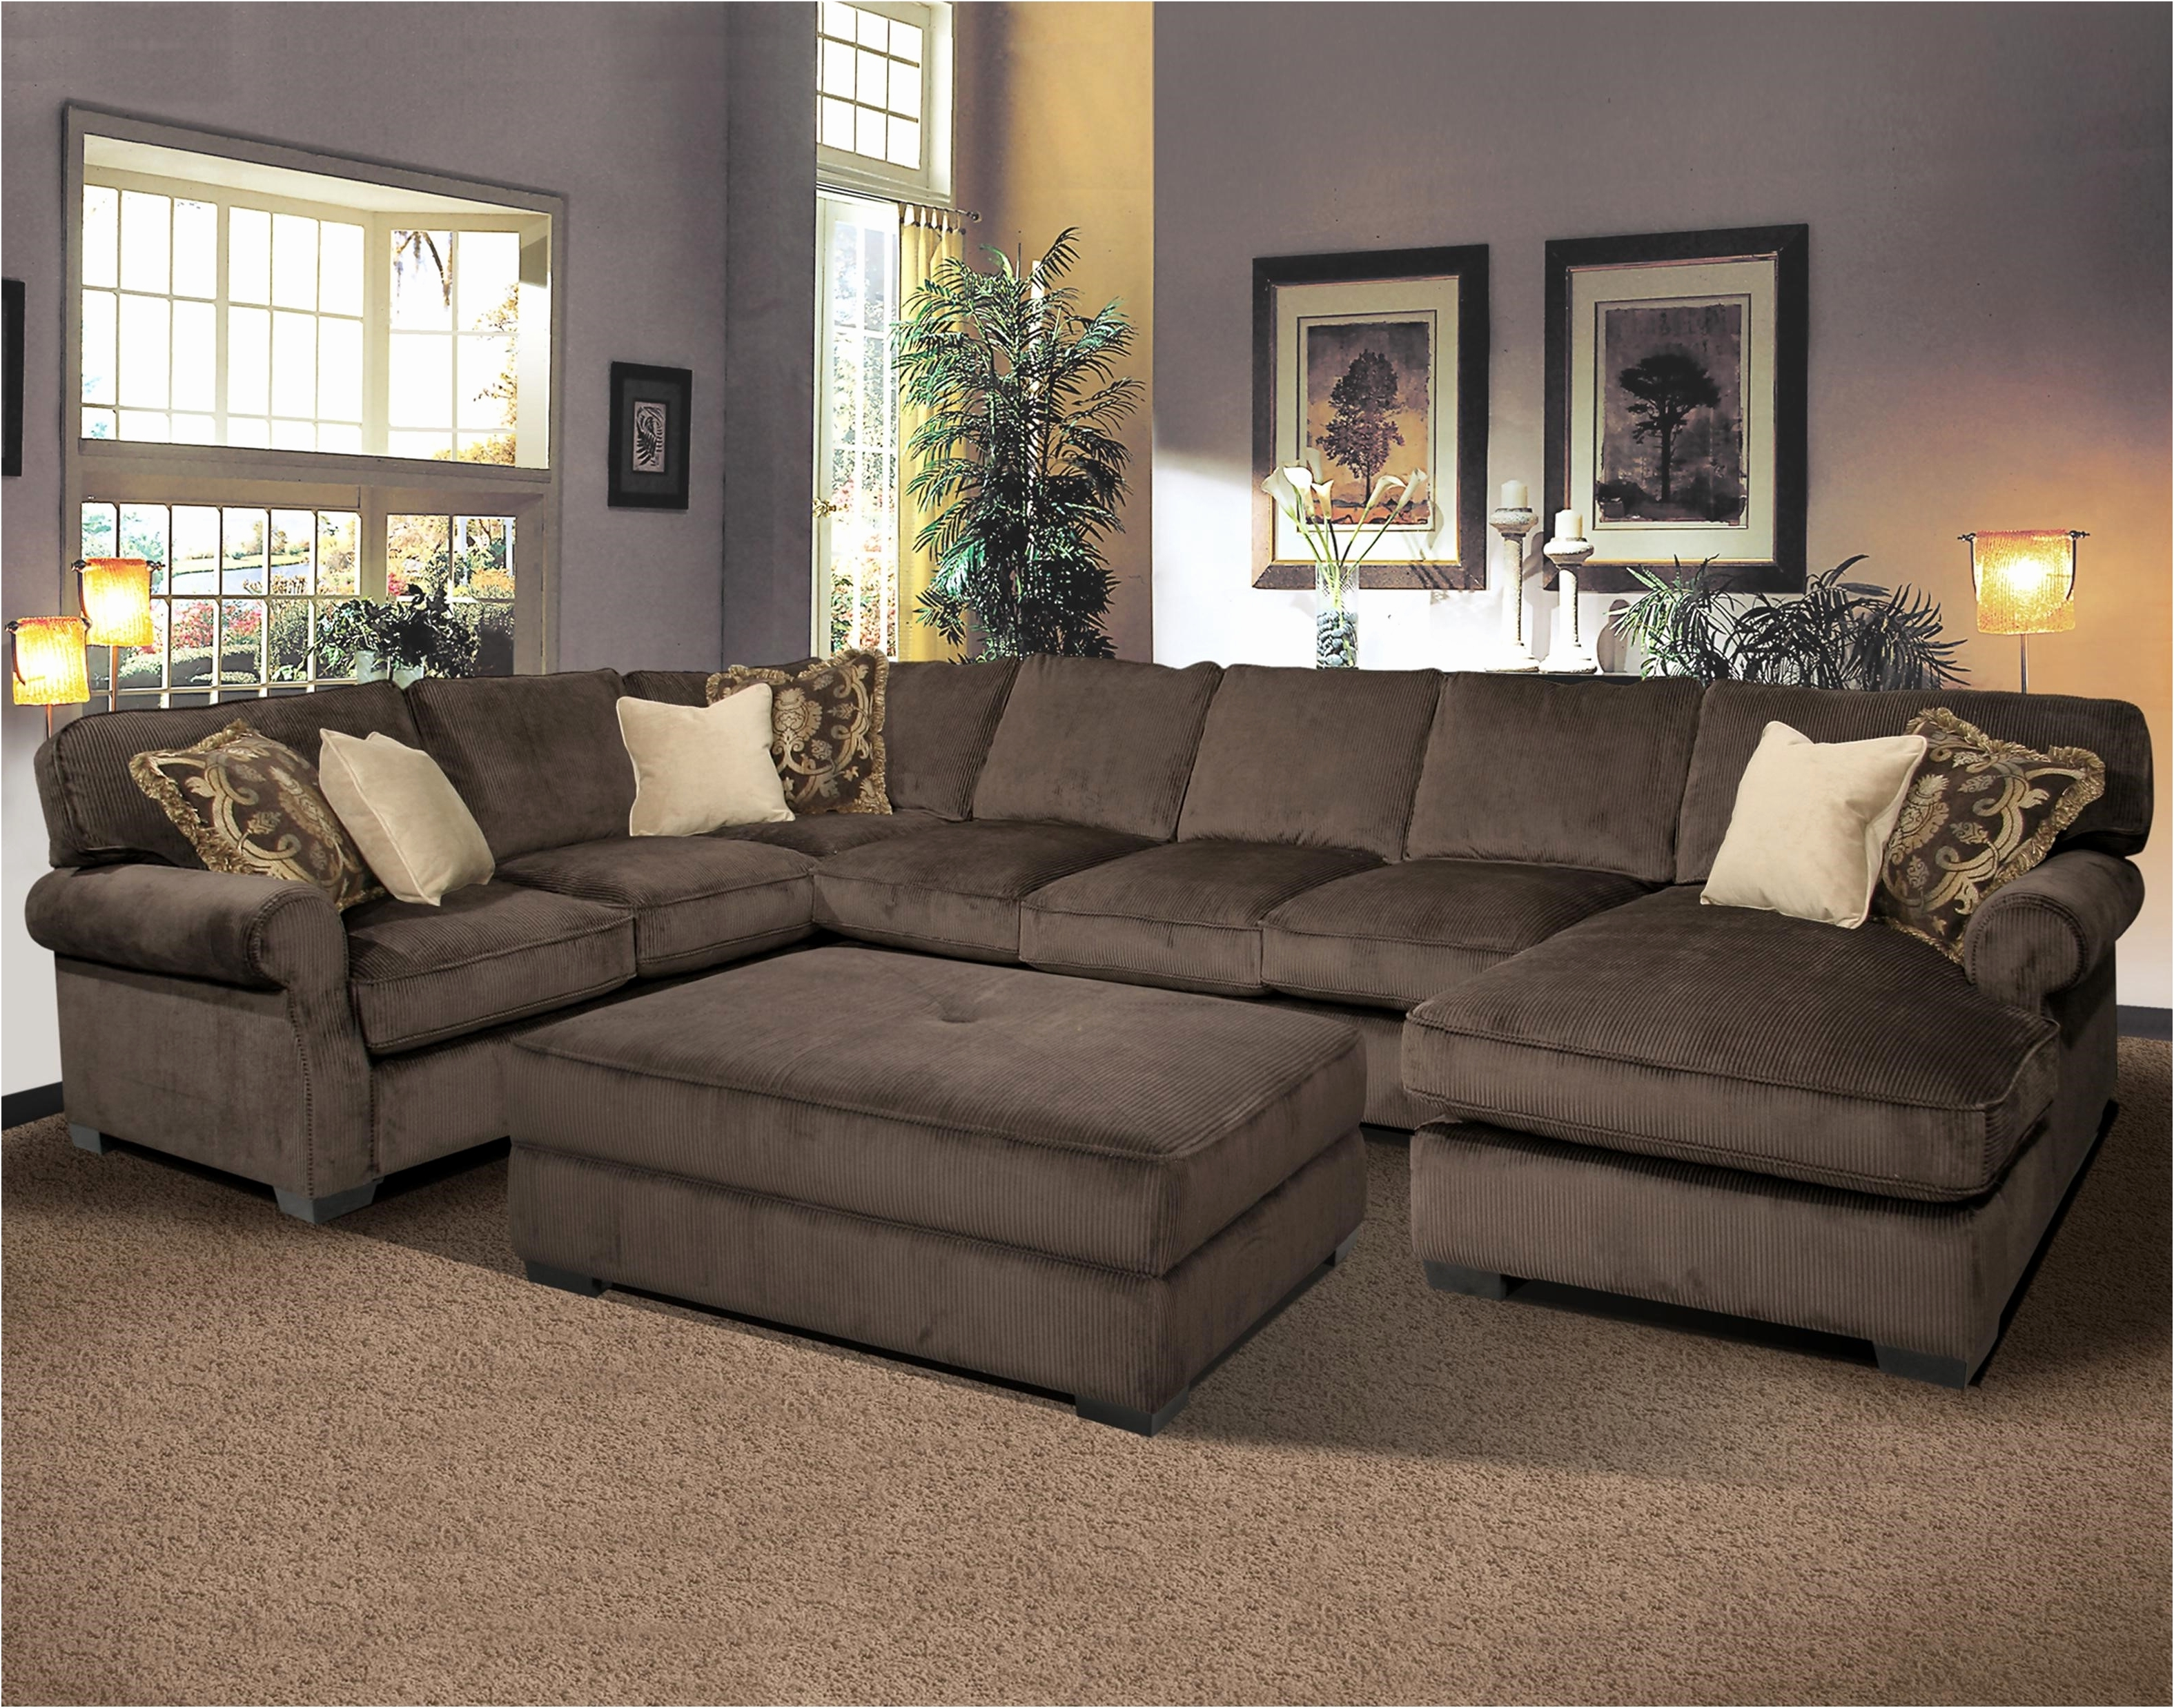 Sofa Usedectionalofas Mn Clearance Hutchinson Furniture Rochester within Mn Sectional Sofas (Image 10 of 10)